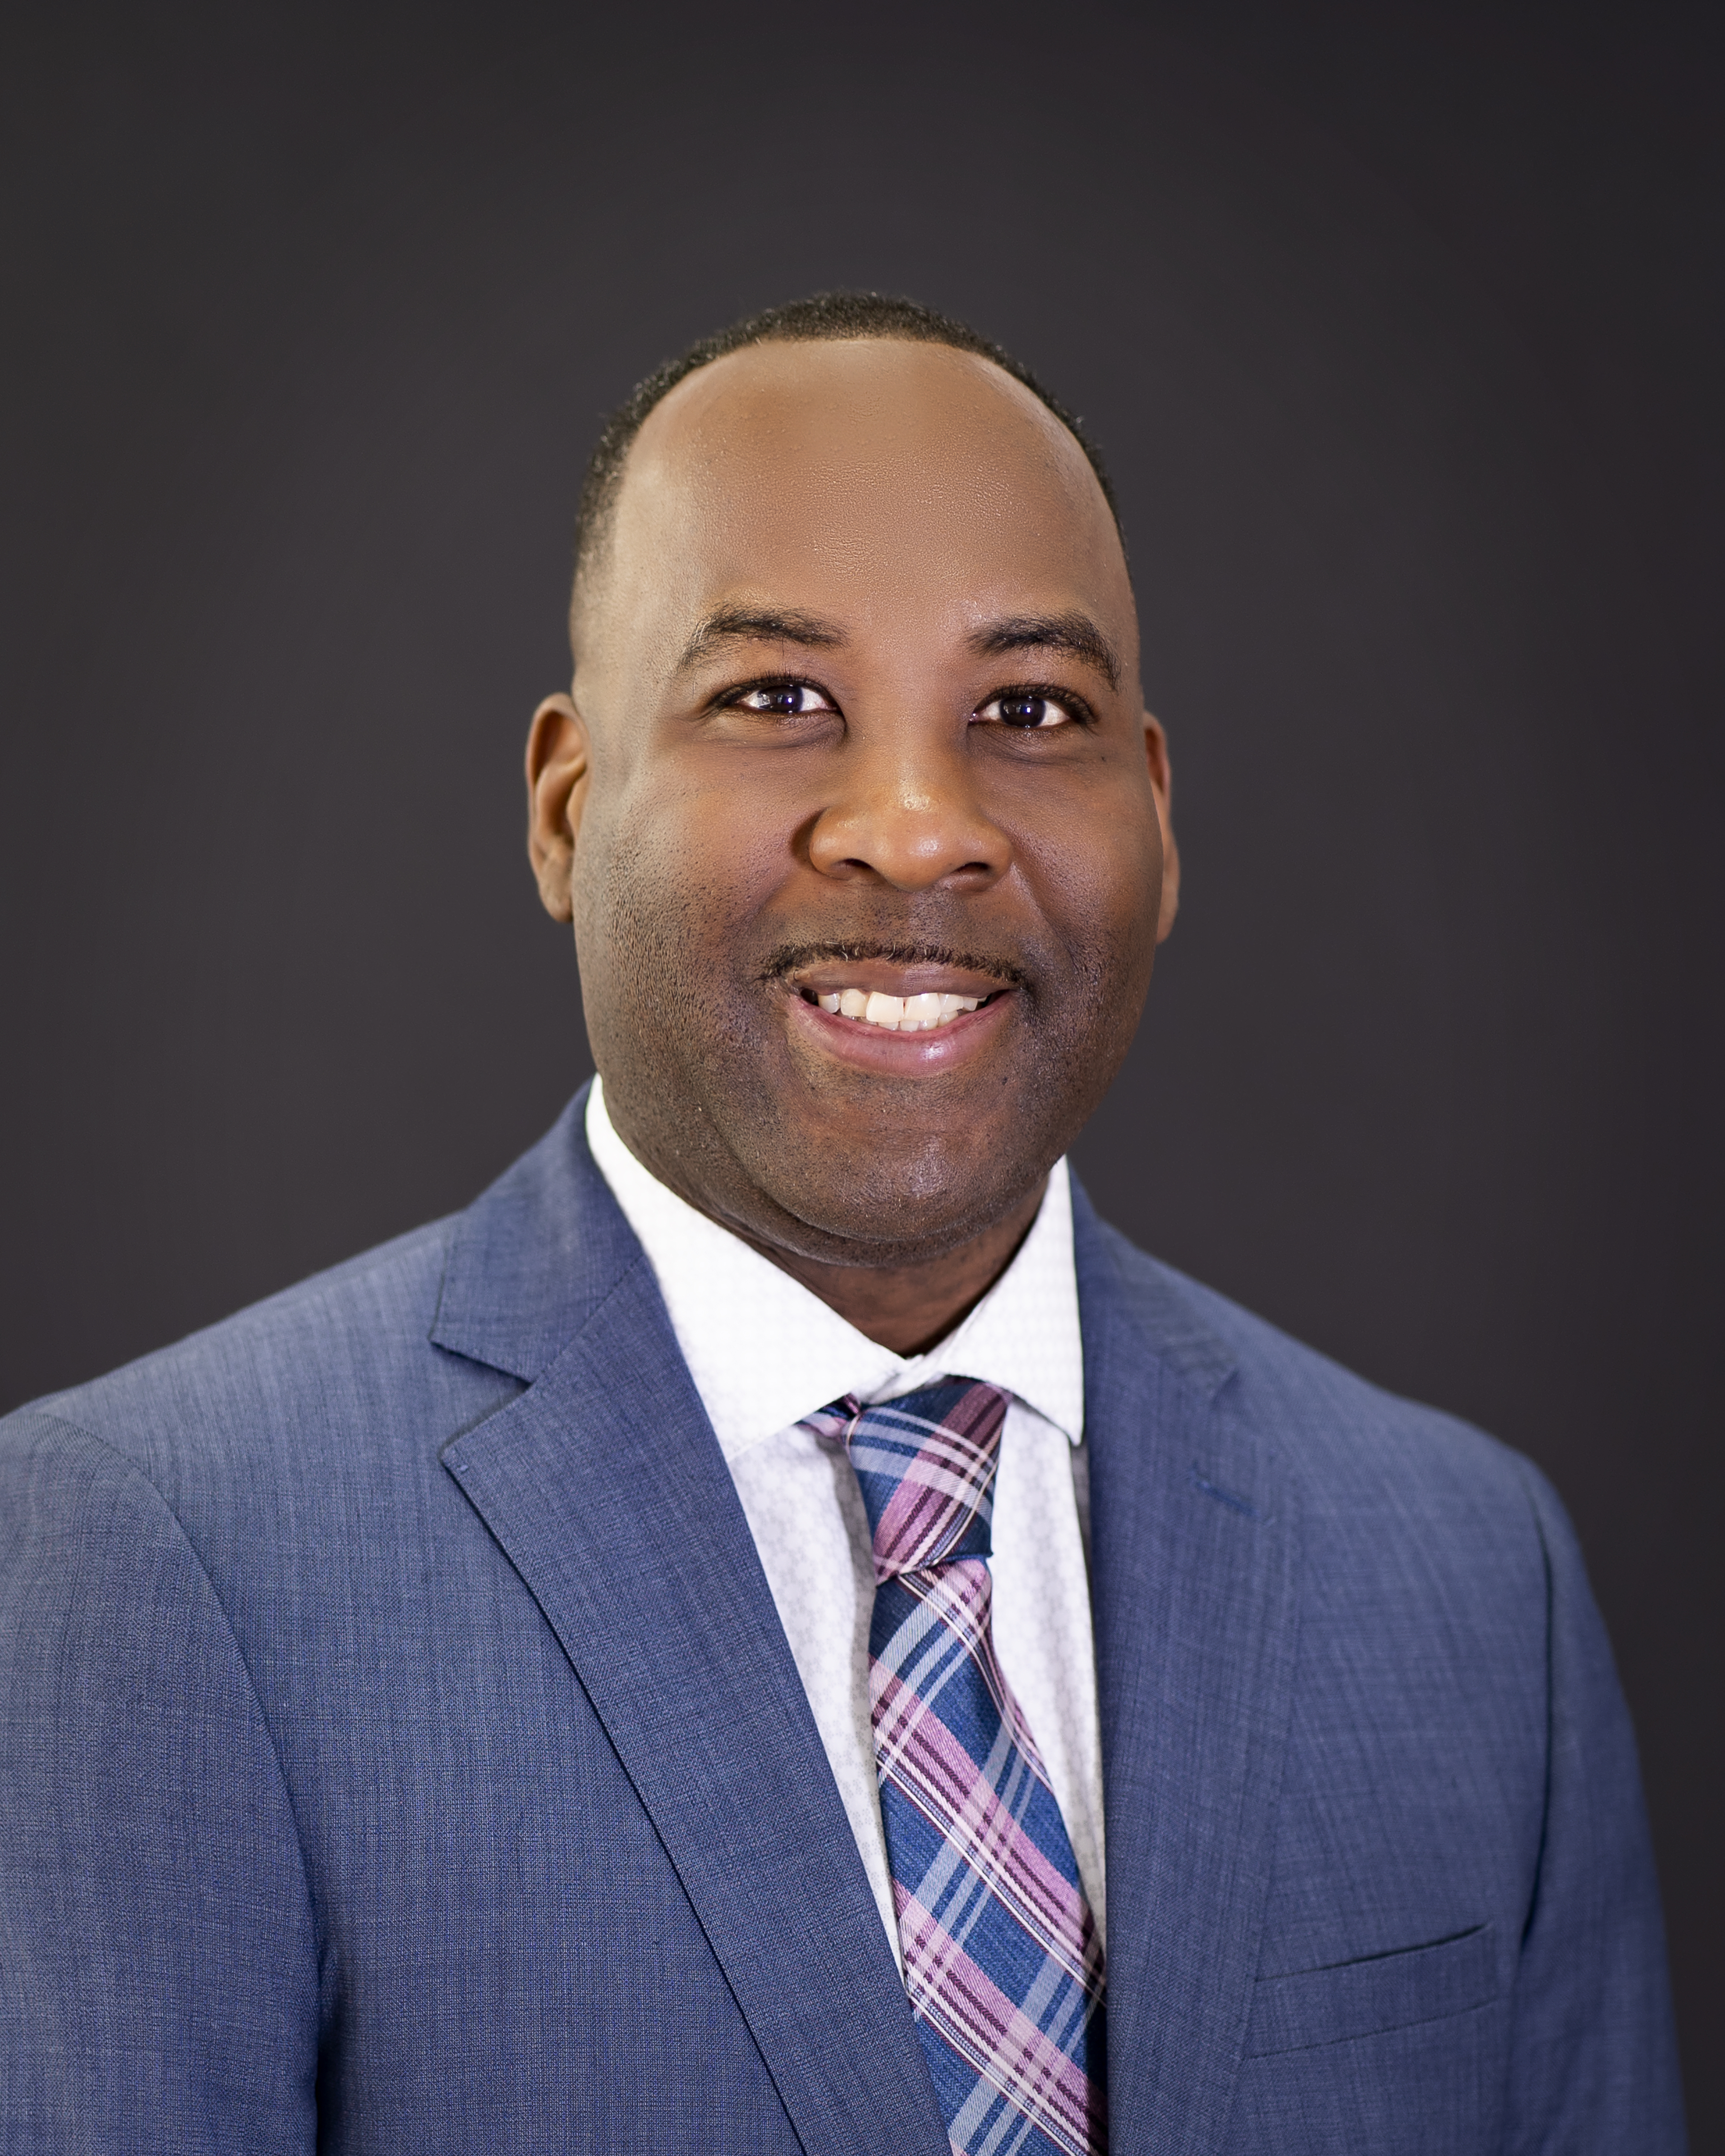 JERMEL STEVENSON, DIRECTOR OF PARKS & RECREATION DEPARTMENT